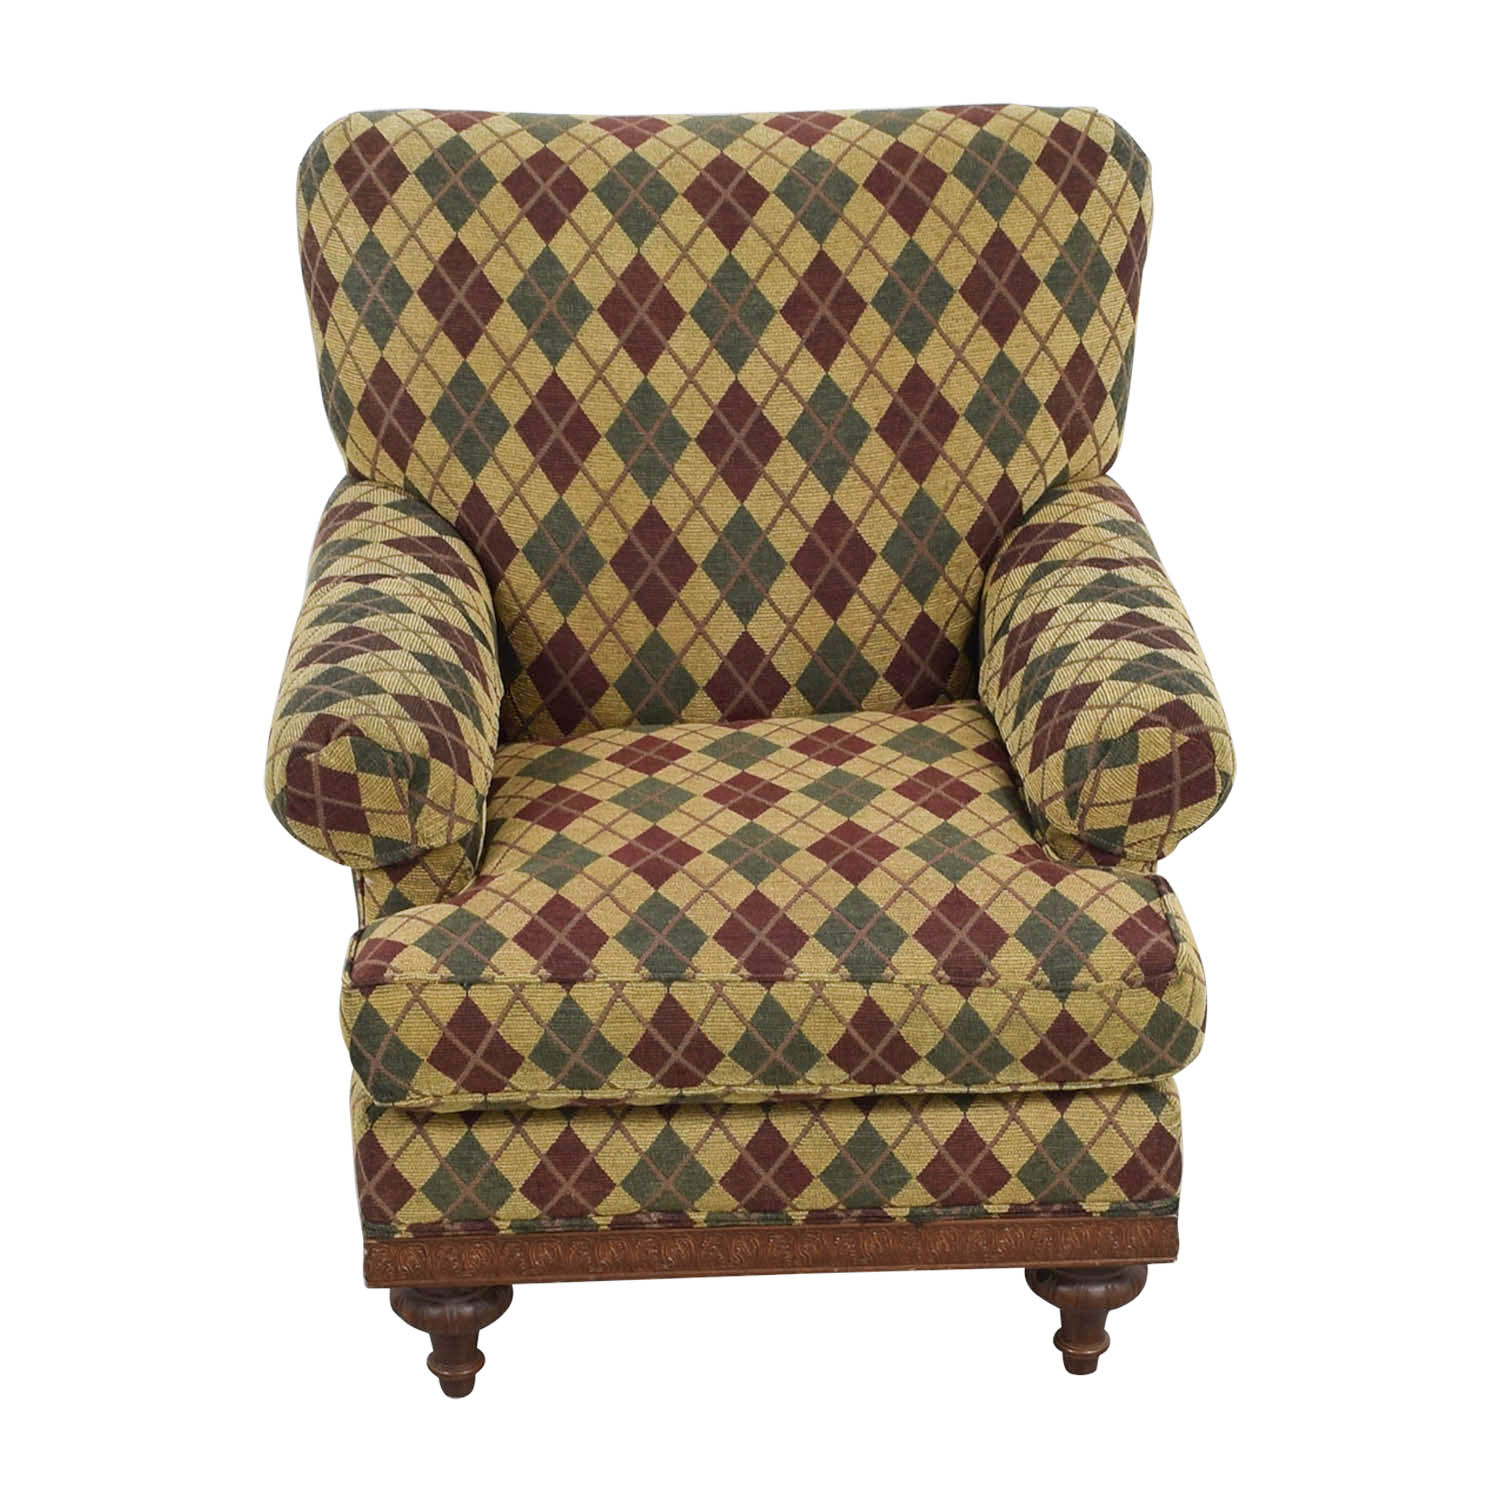 Argyle Upholstered Arm Chair sale